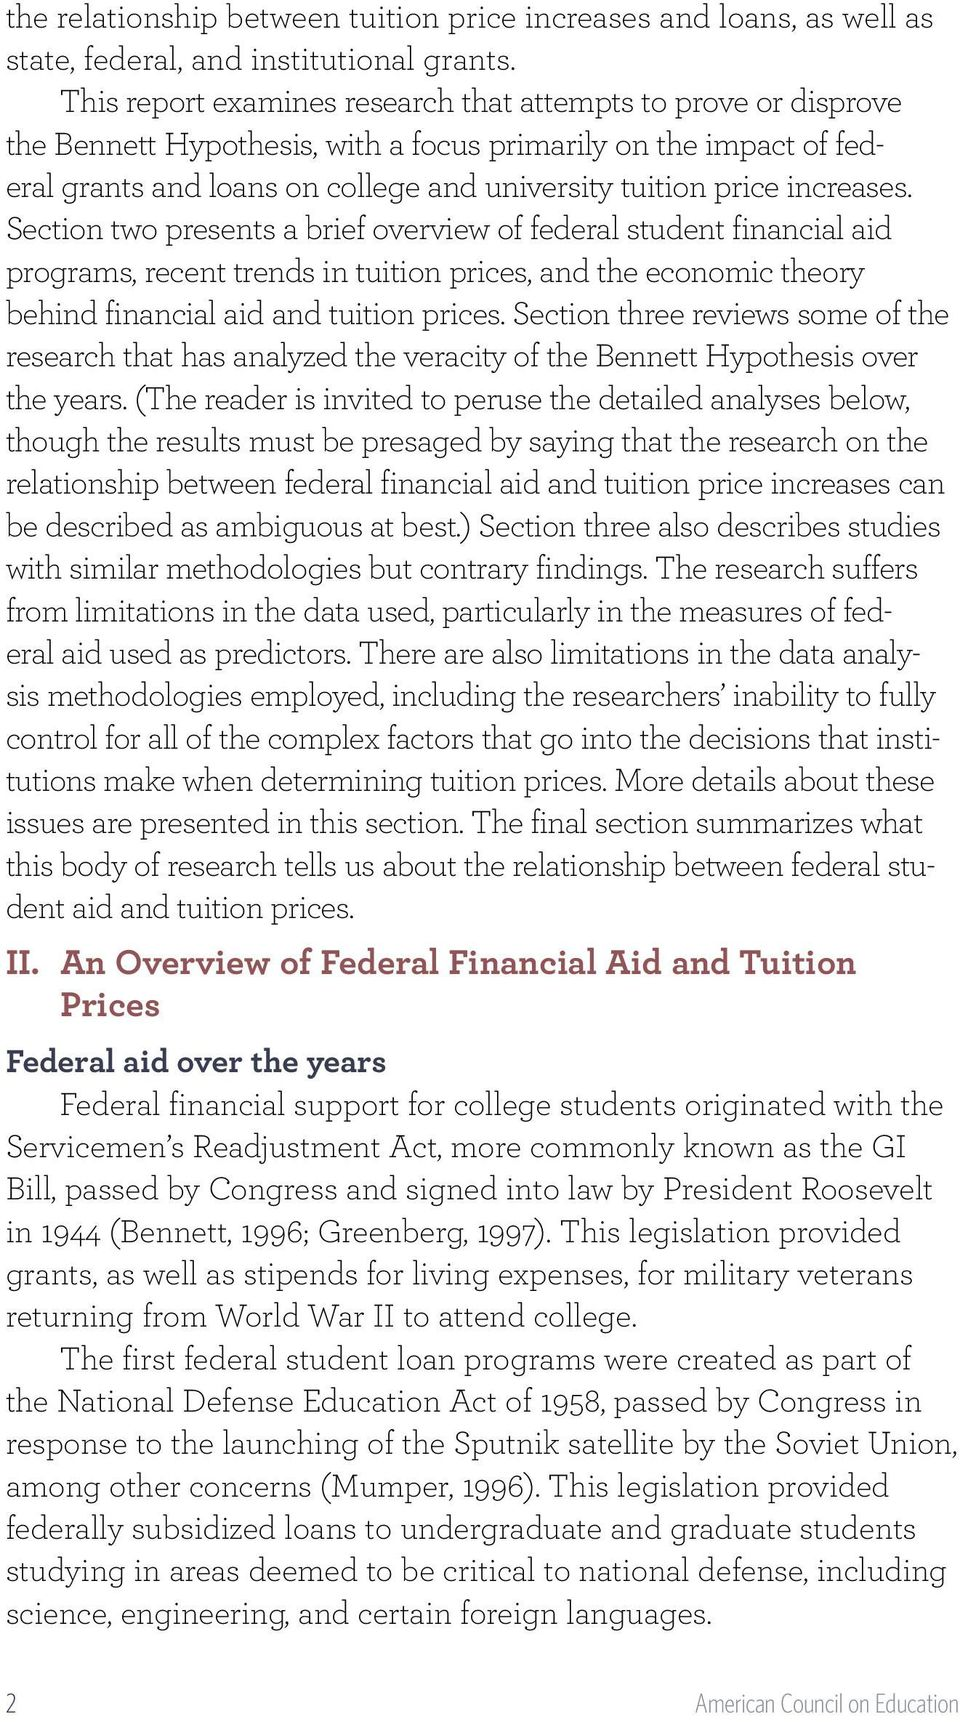 increases. Section two presents a brief overview of federal student financial aid programs, recent trends in tuition prices, and the economic theory behind financial aid and tuition prices.